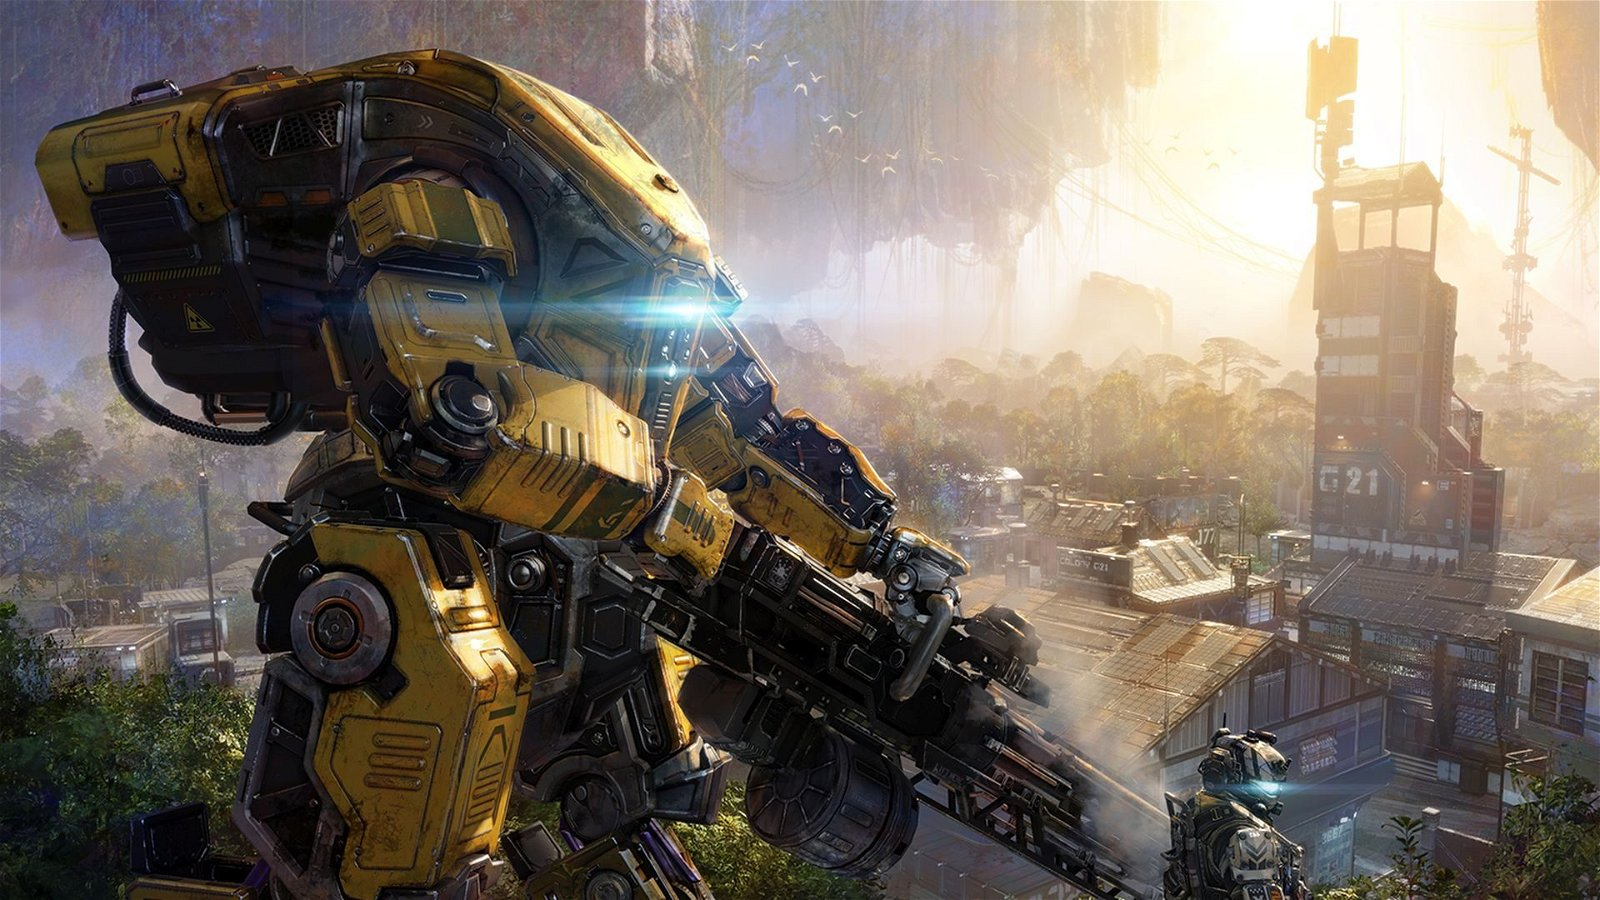 Respawn Hints At More Titanfall games In The Works 1